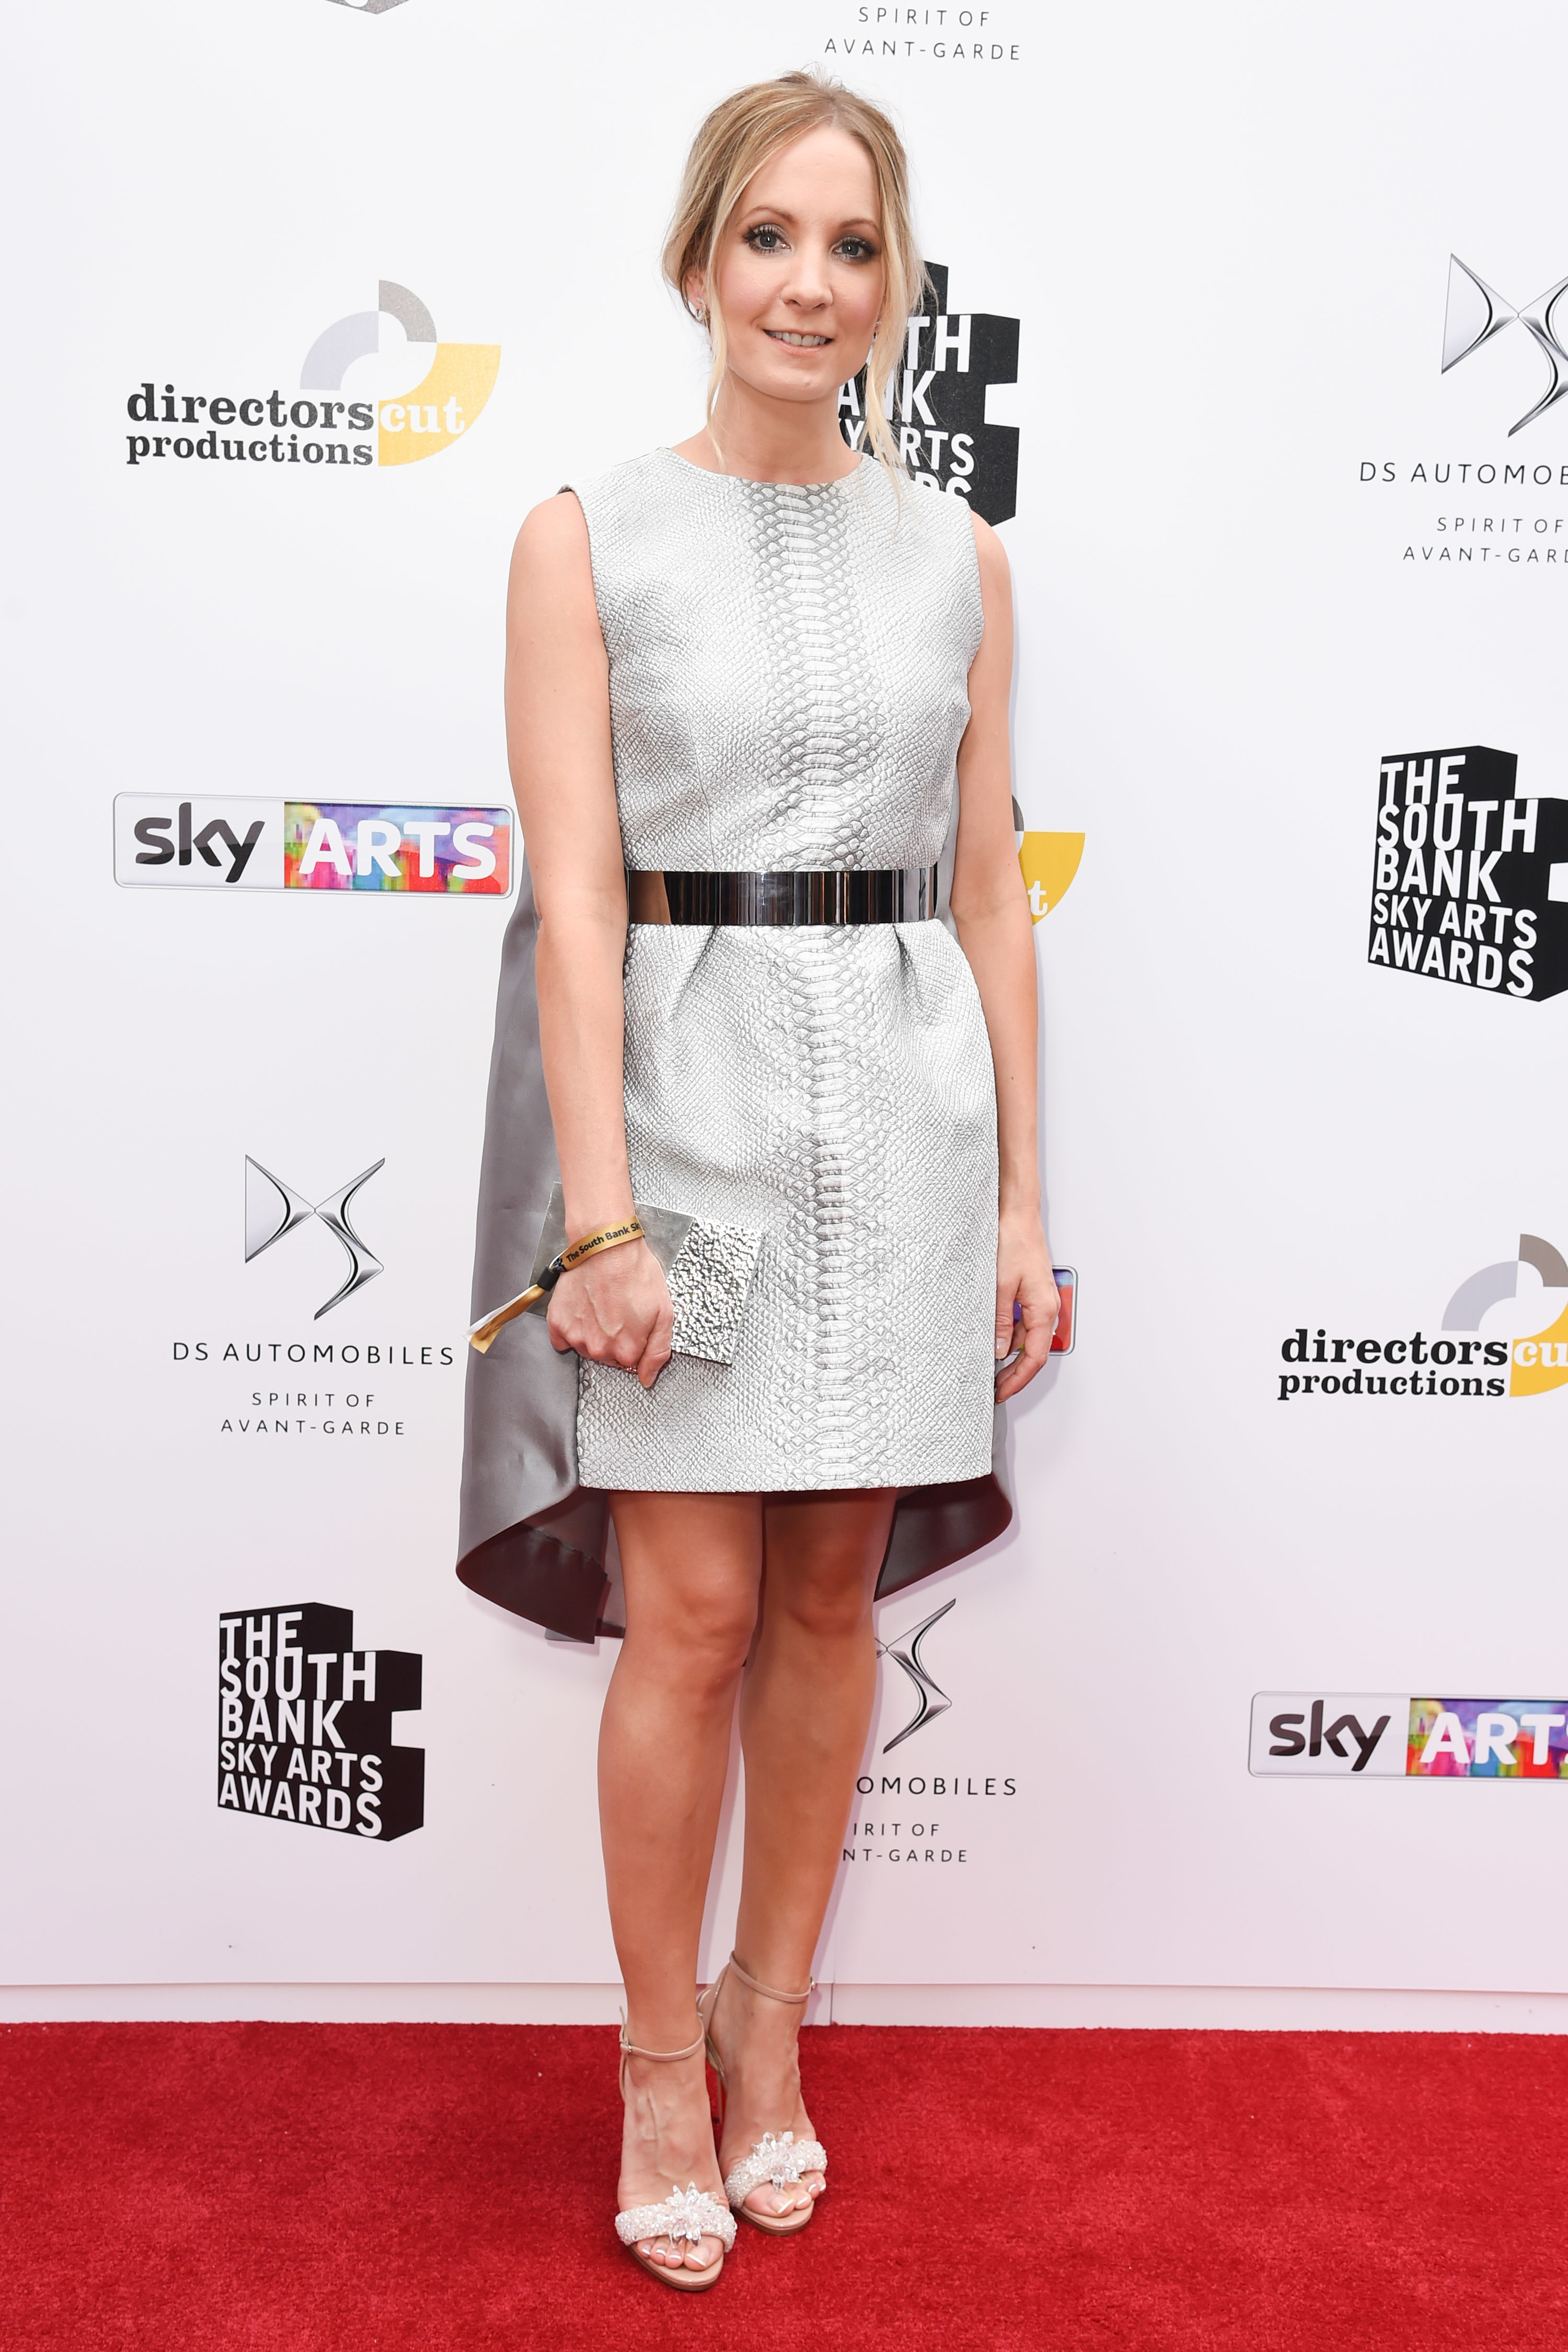 Joanne Froggatt attends the South Bank Sky Arts Awards in London on July 9, 2017.